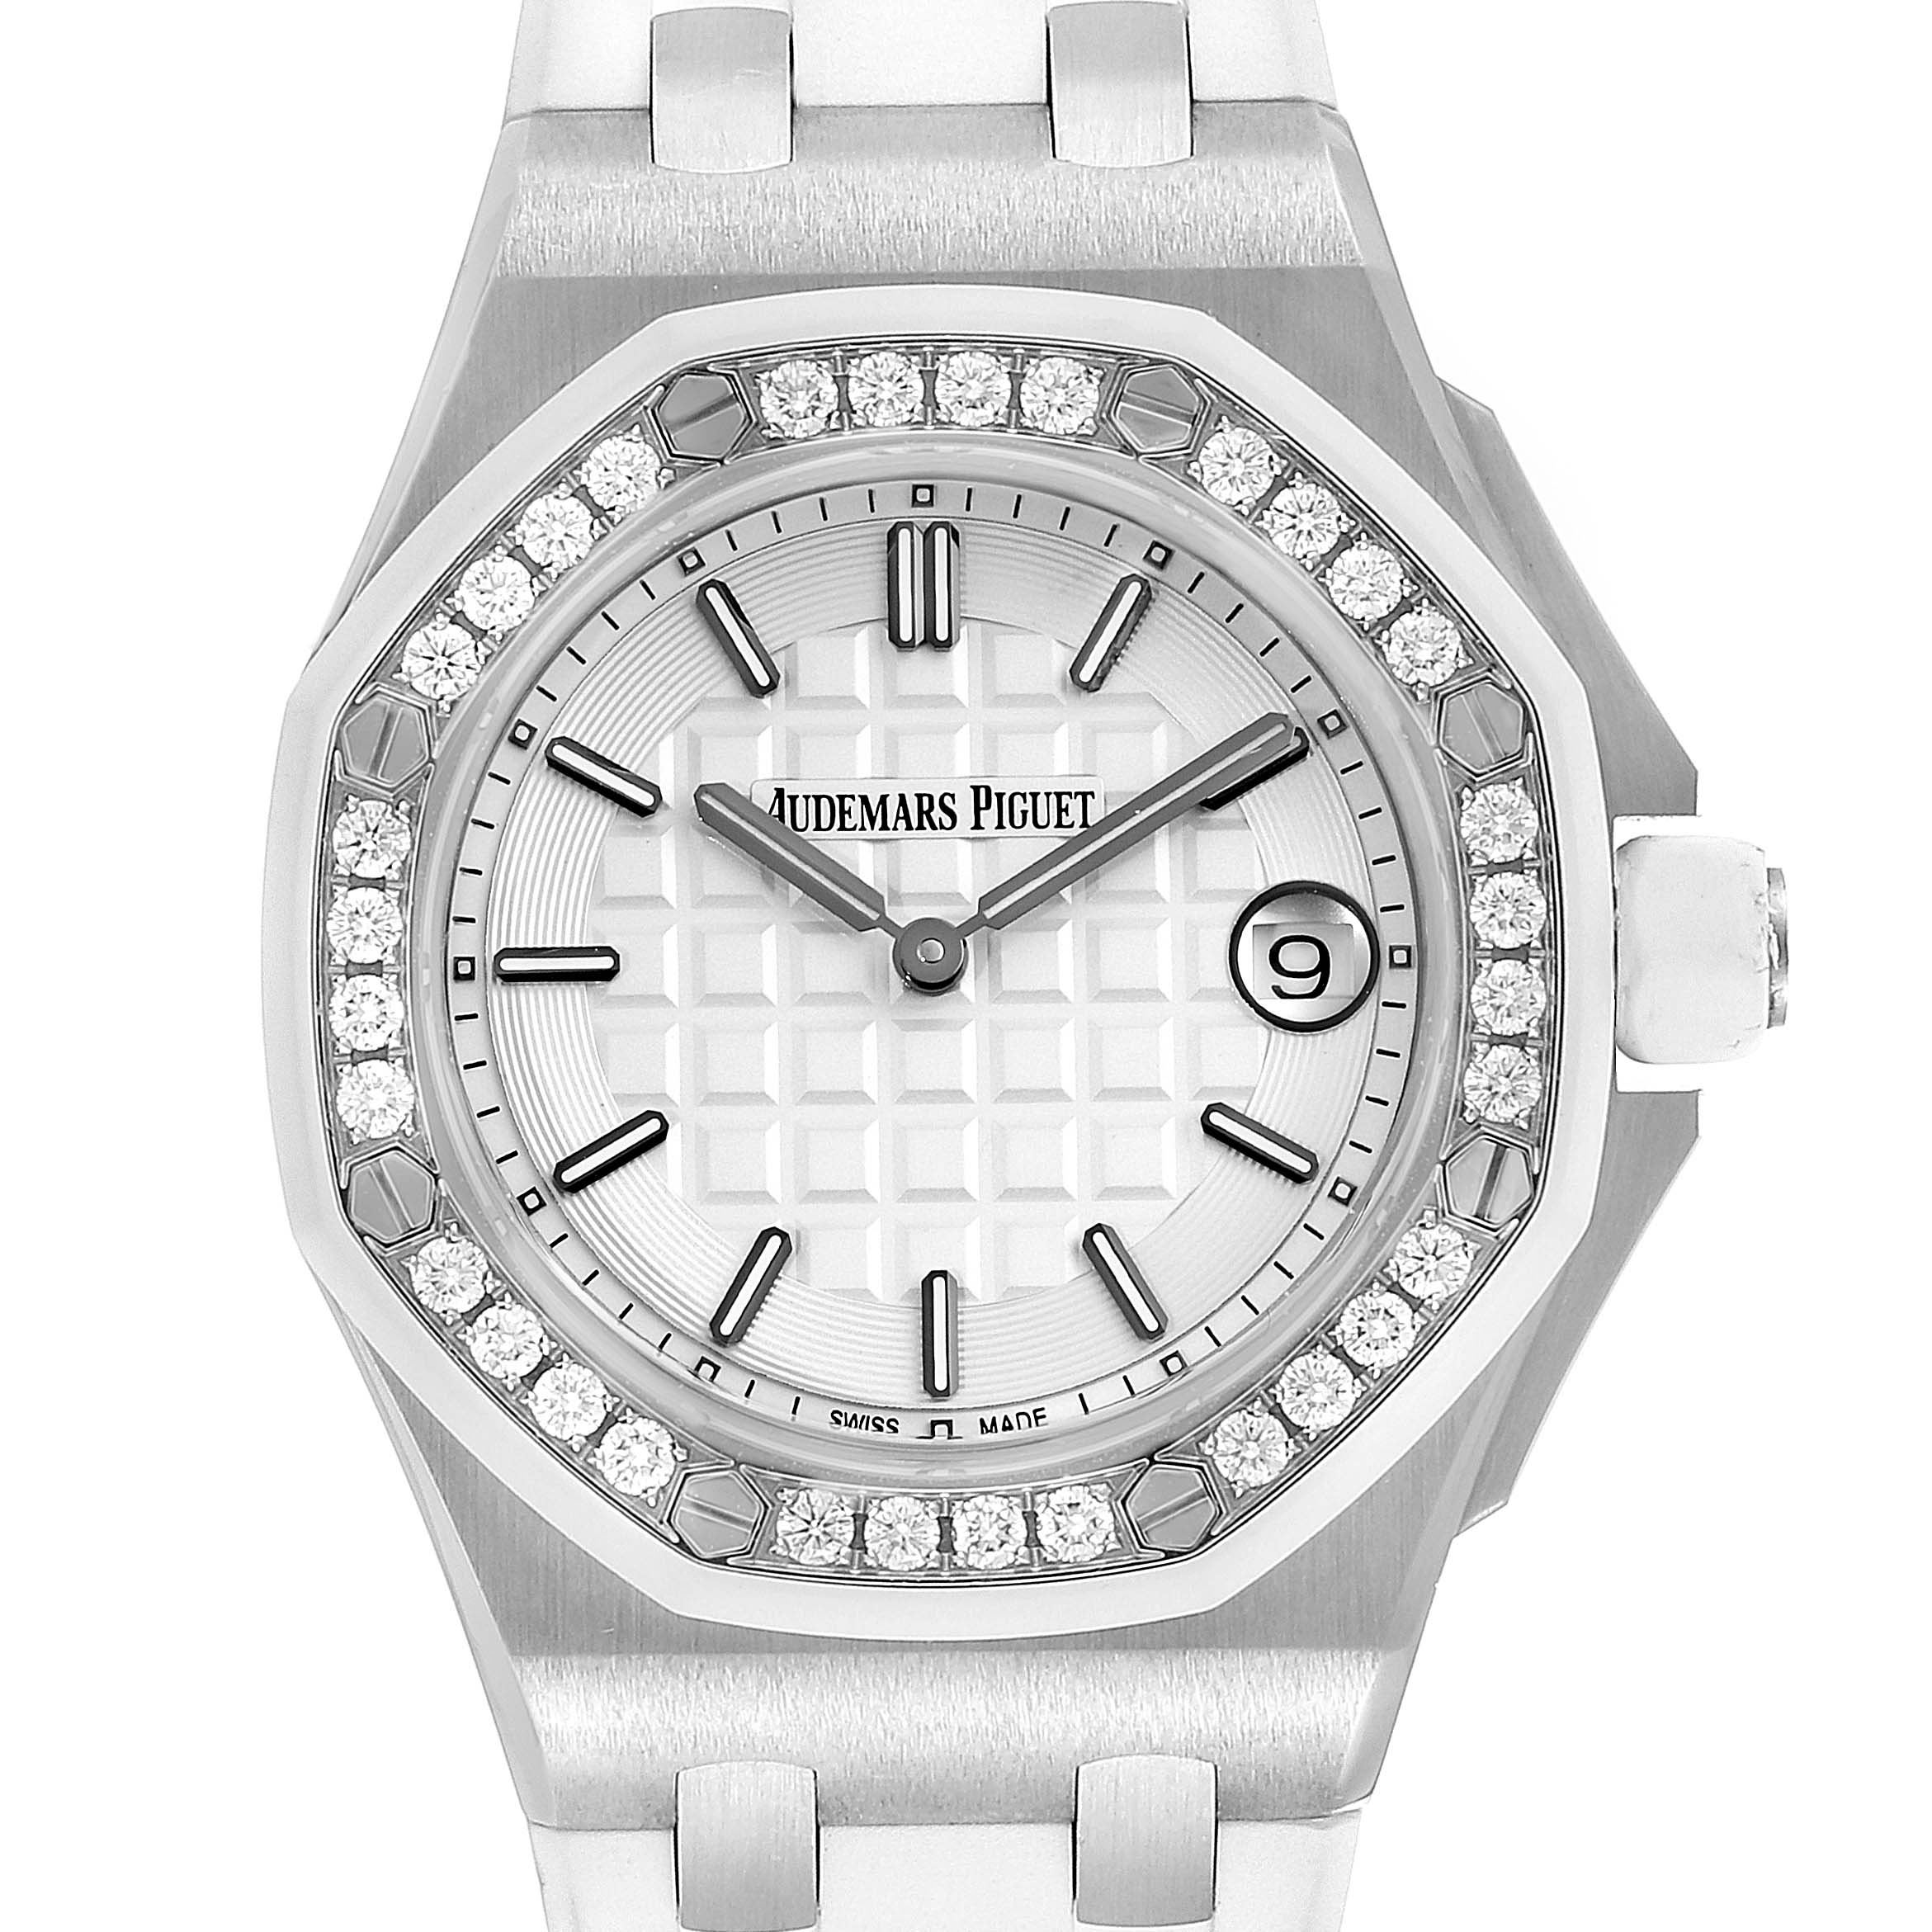 Photo of Audemars Piguet Royal Oak Offshore 37mm Diamond Ladies Watch 57175ST